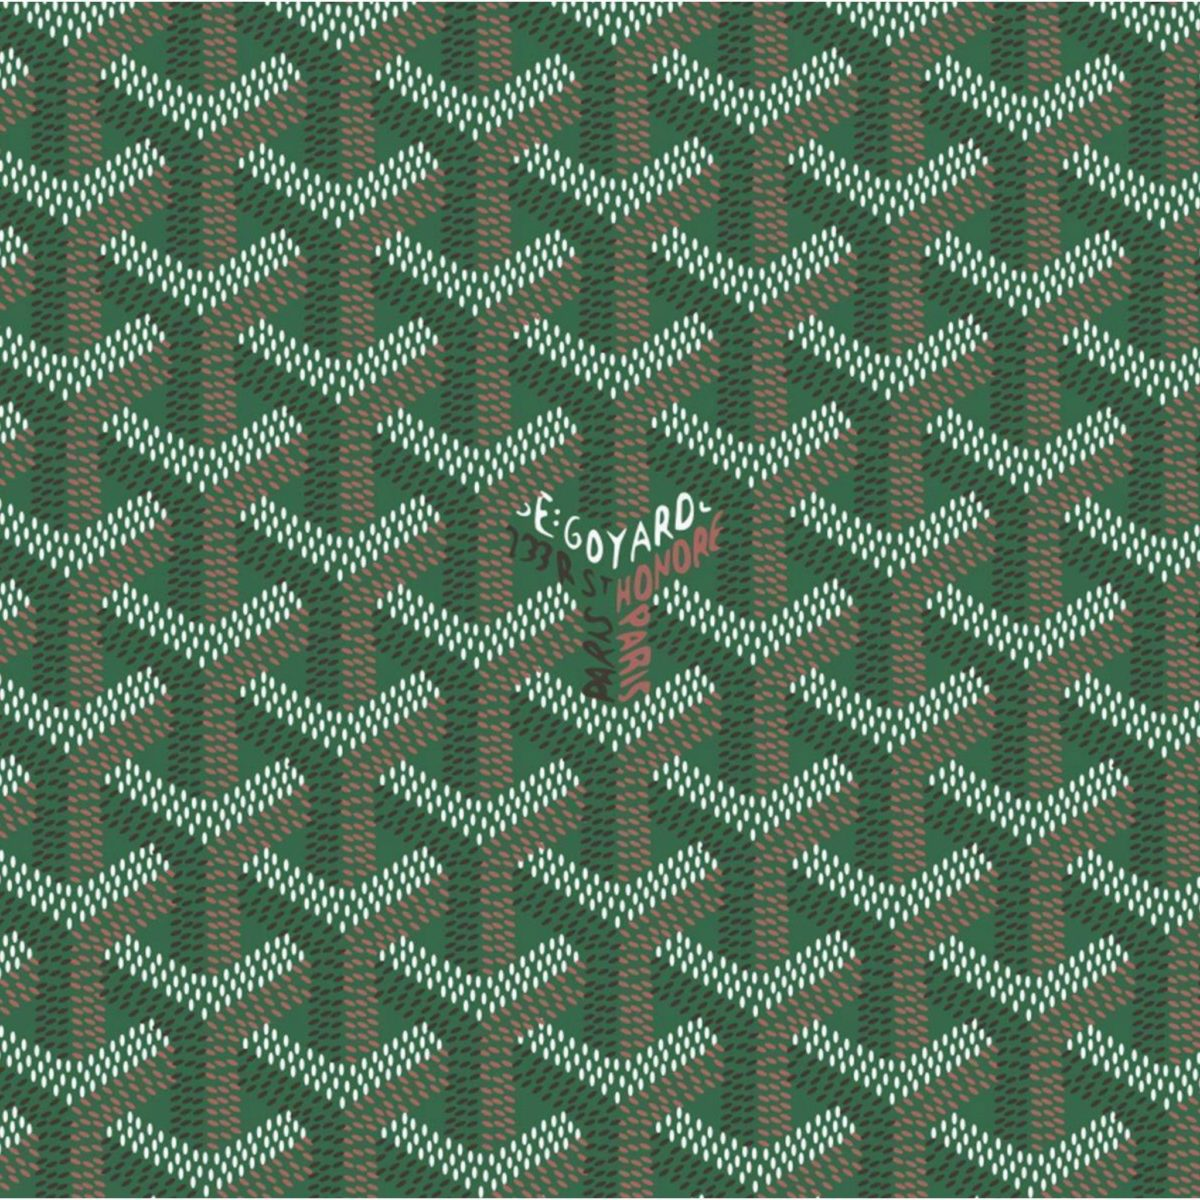 Green Goyard Pattern – Tap to see more goyard wallpapers! – @mobile9 …